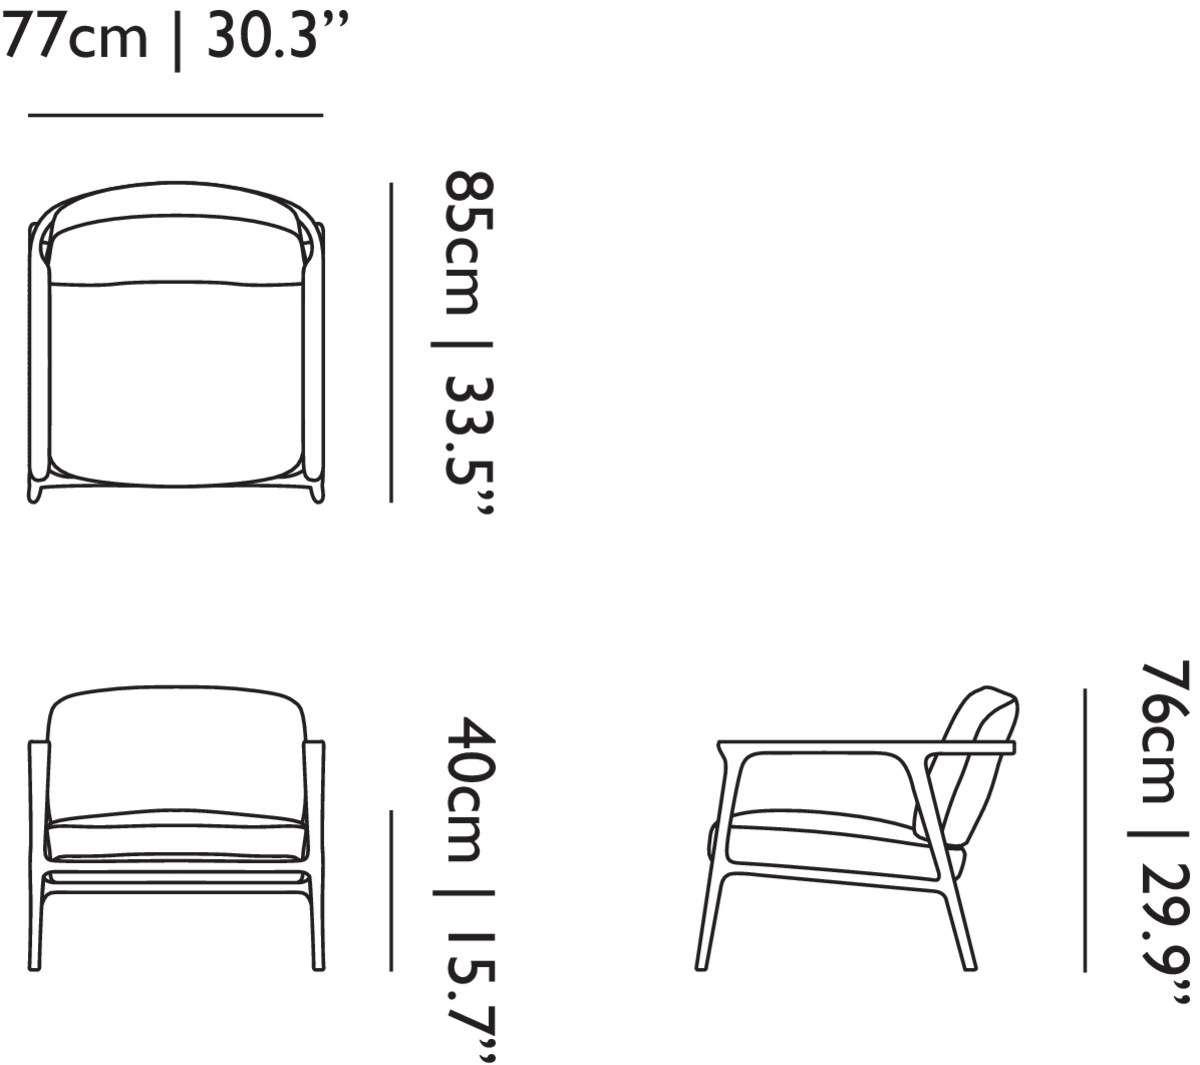 Zio Lounge Chair linedrawing with dimensions